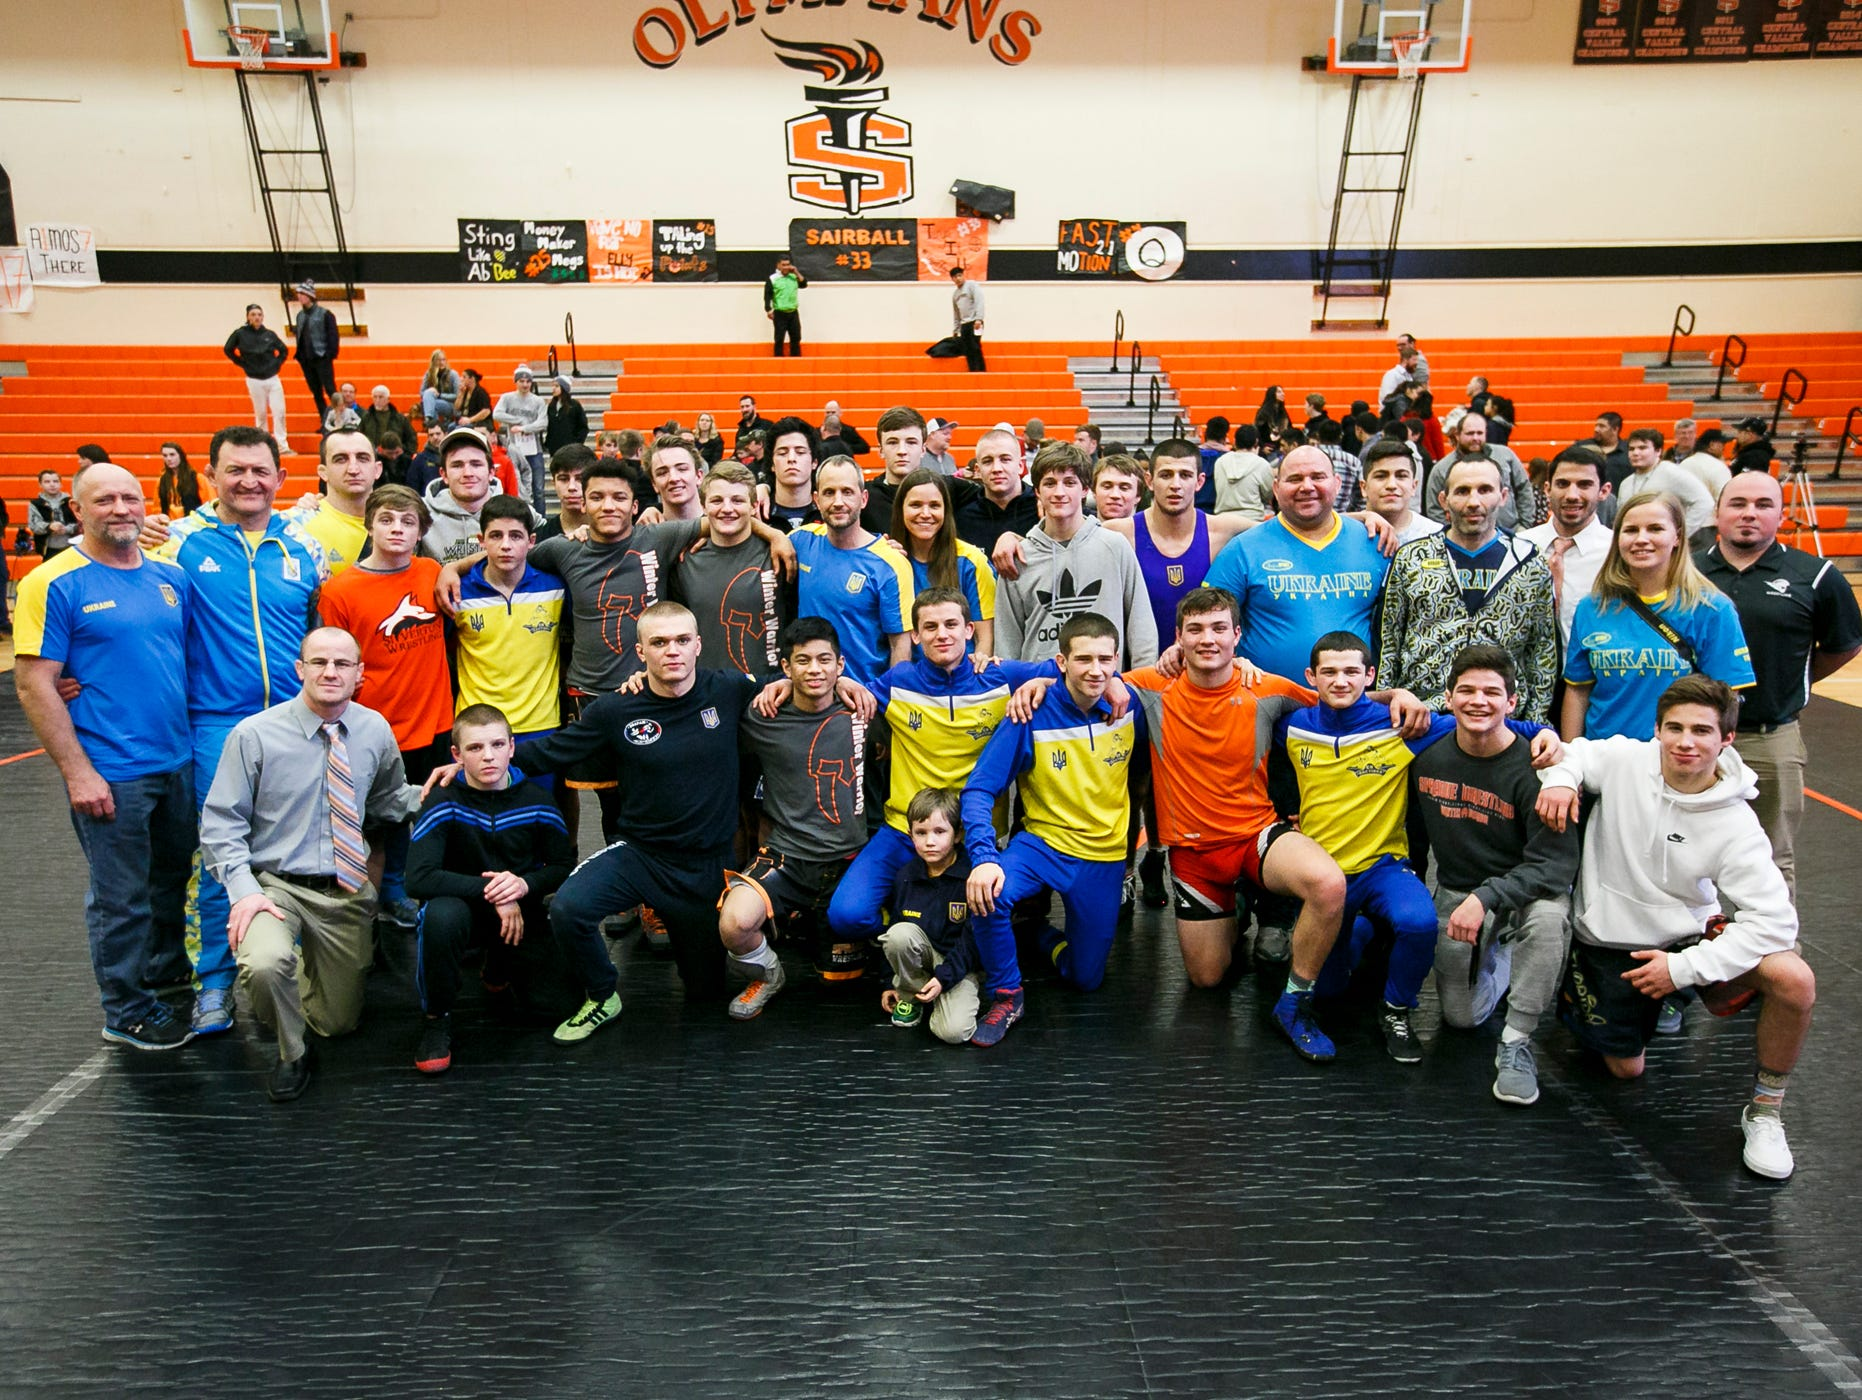 Members of the Ukrainian Junior National Team and Salem Area All-Stars pose for a photo after a friendly match up at Sprague High School on Tuesday, March 8, 2017. Members of the Ukrainian team will now head to Roseburg for another match up, this time against the Roseburg Area All-Stars.